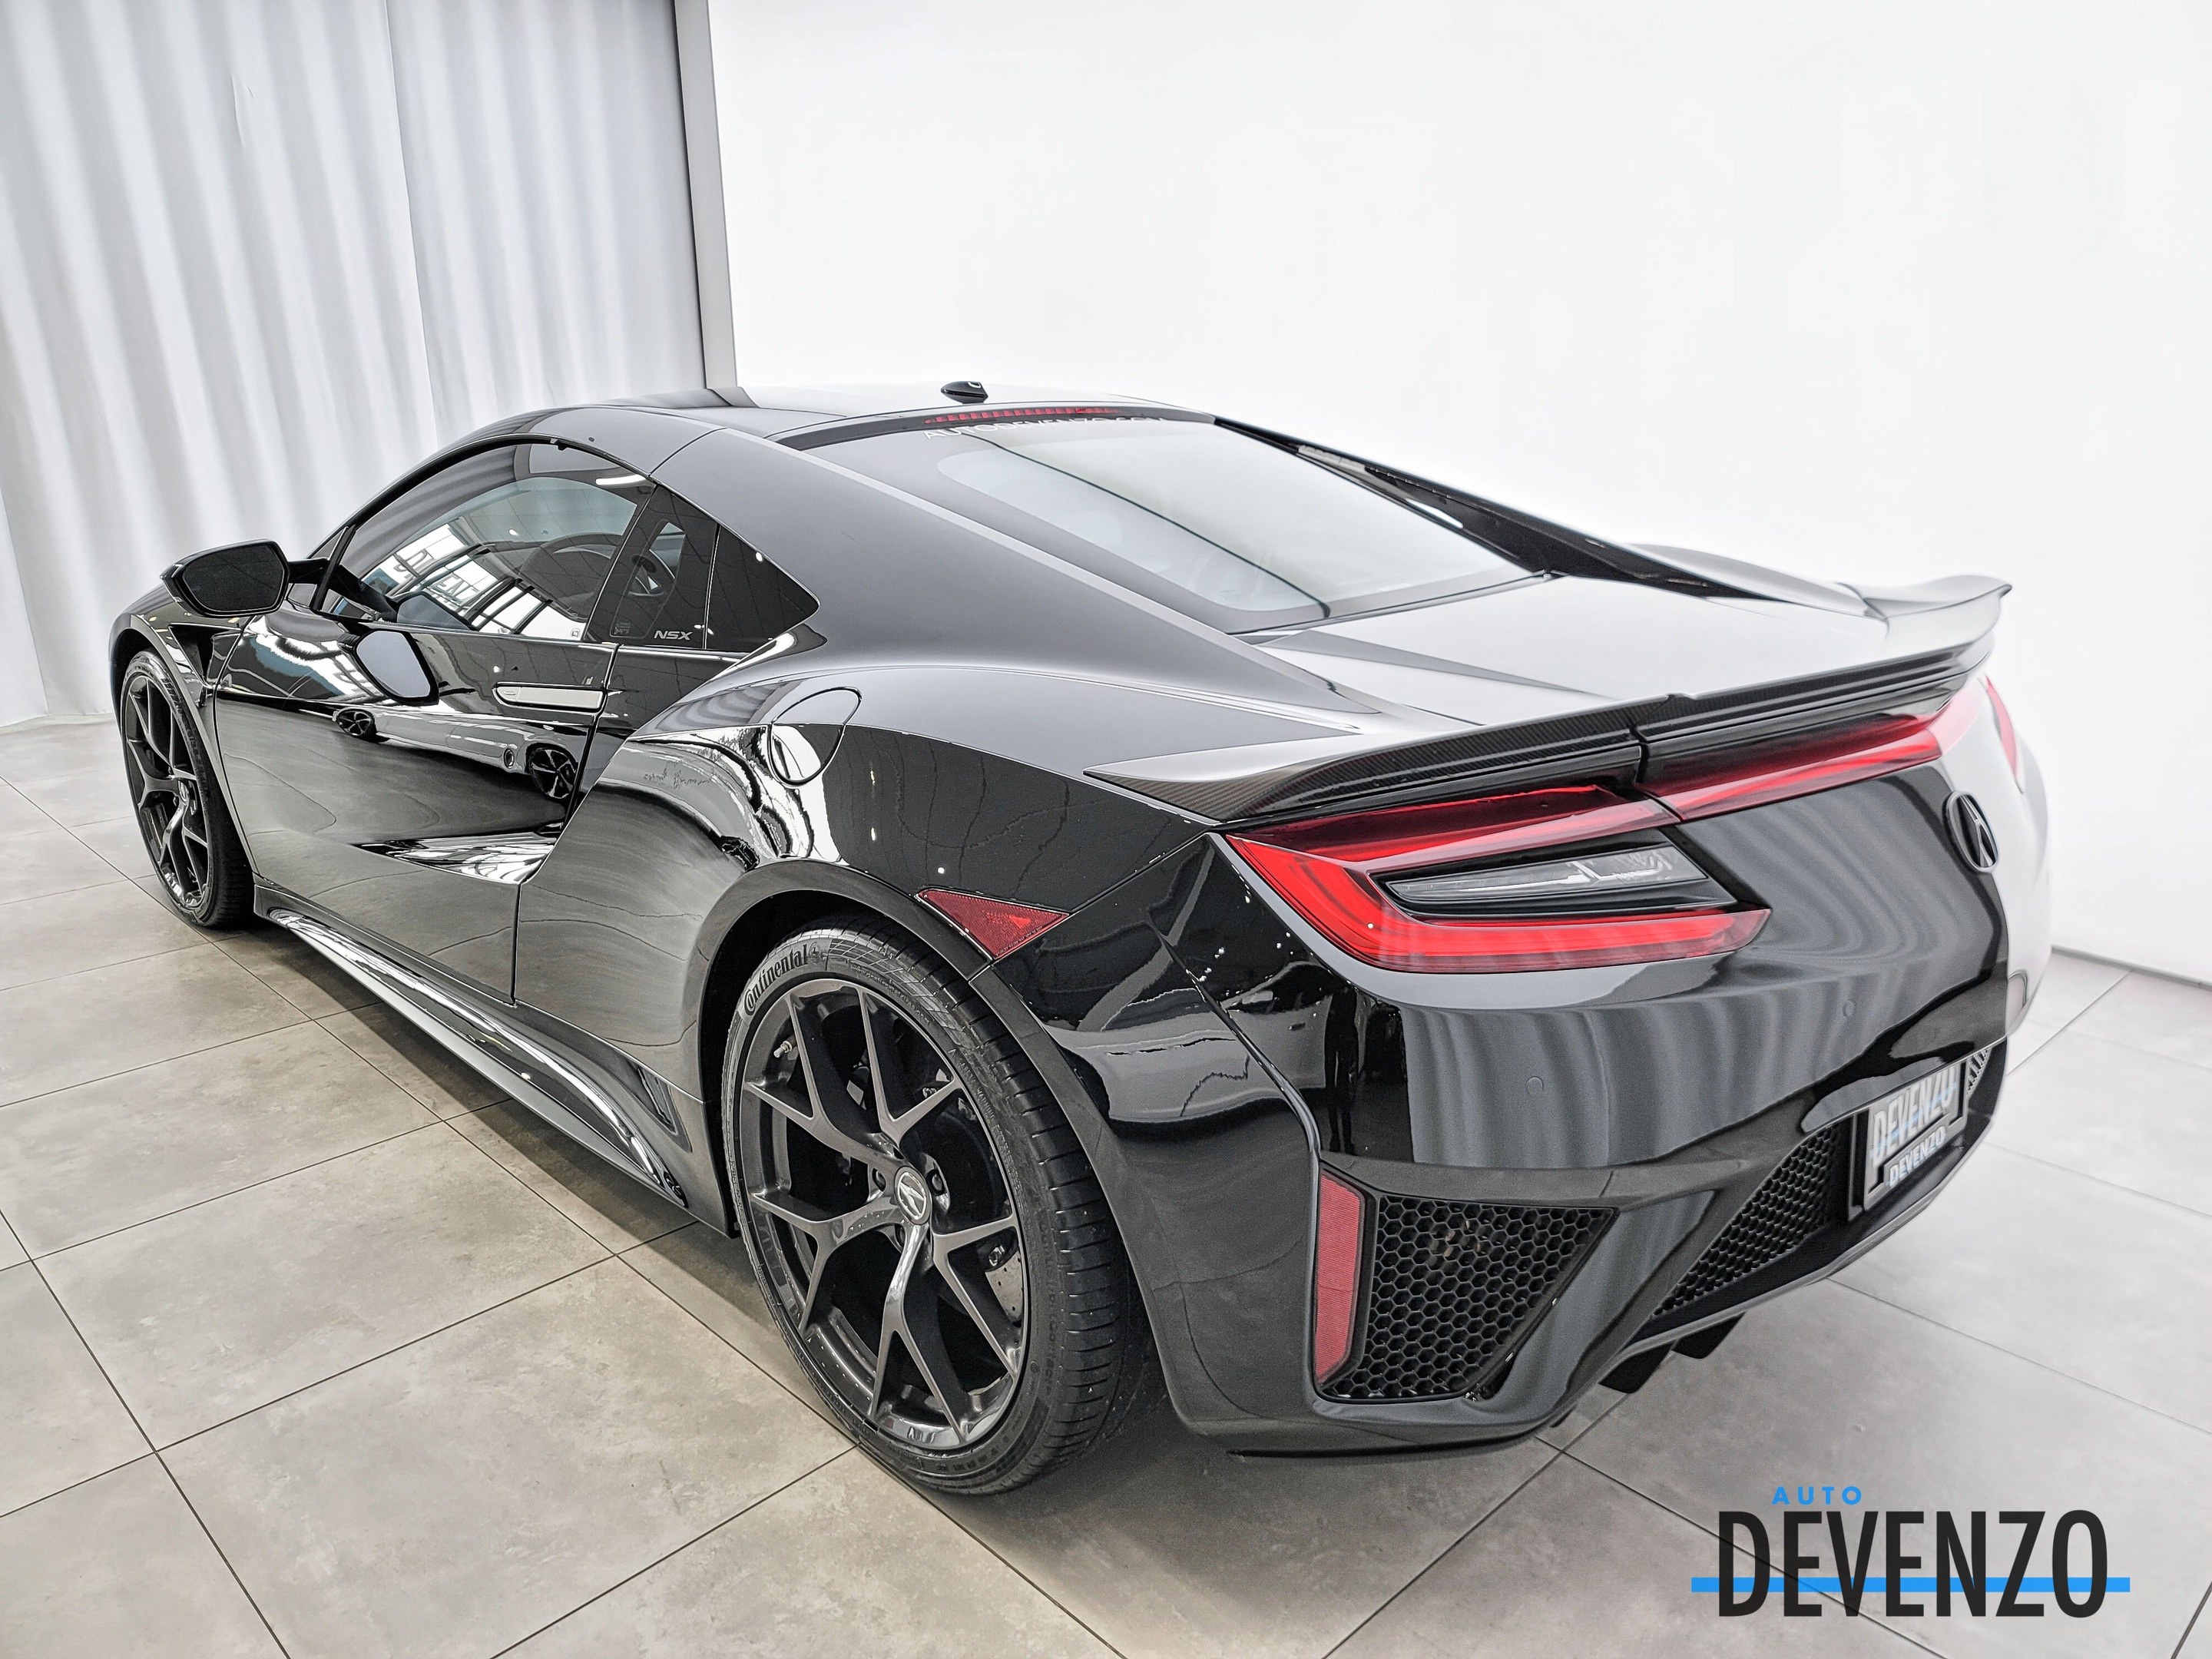 2017 Acura NSX HYBRID FULL CARBON FIBER PACKAGE / TECH PACKAGE complet